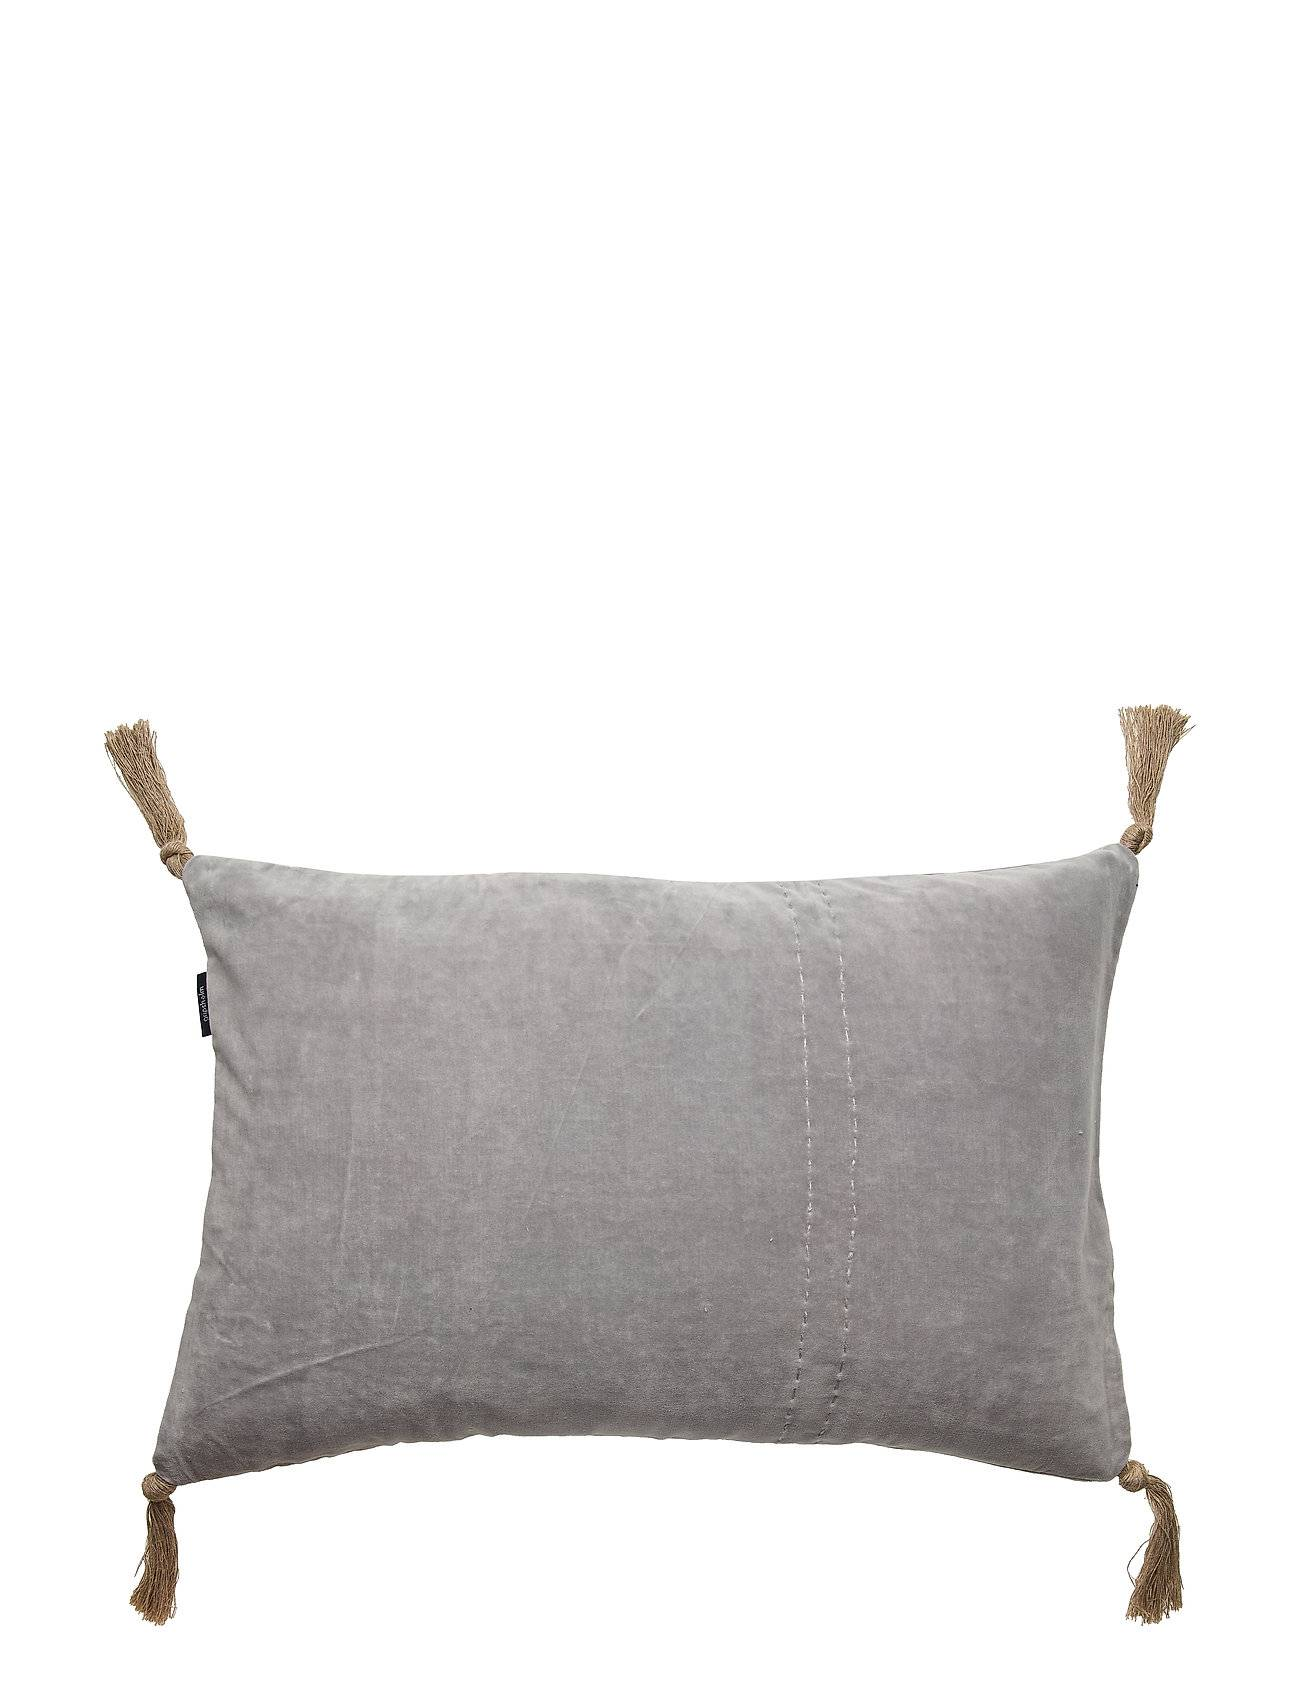 Gripsholm Cushion Cover August Gots Pussilakana Harmaa Gripsholm